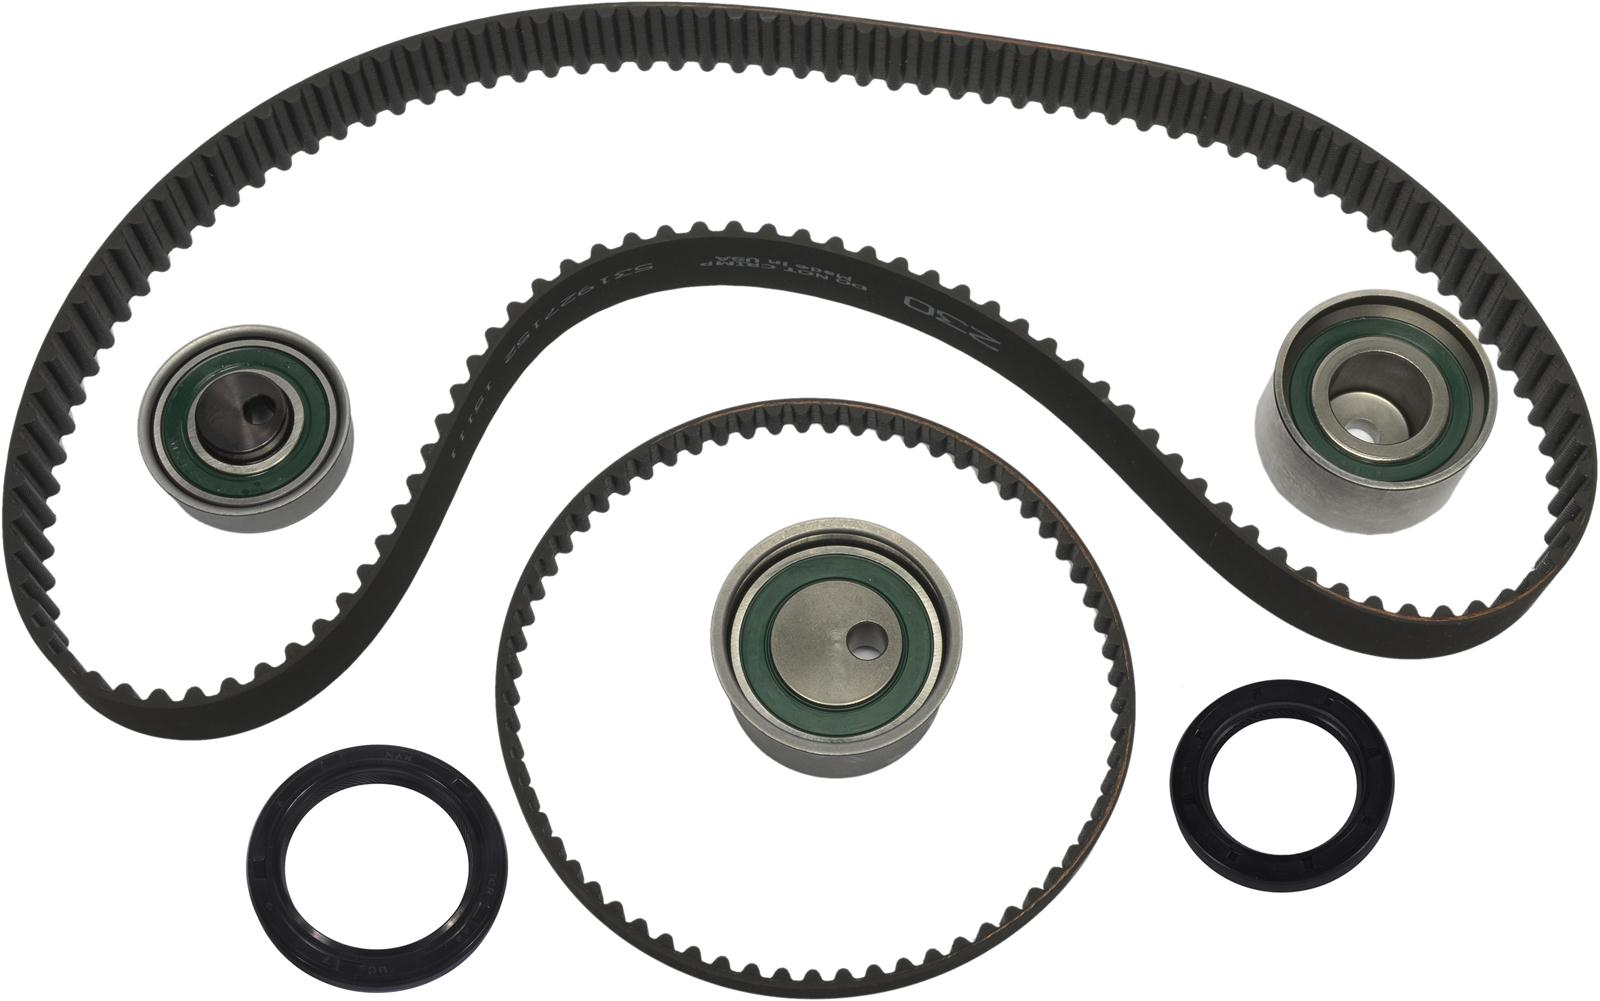 hight resolution of mitsubishi eclipse continental elite timing belt kits gtk0230a free shipping on orders over 99 at summit racing